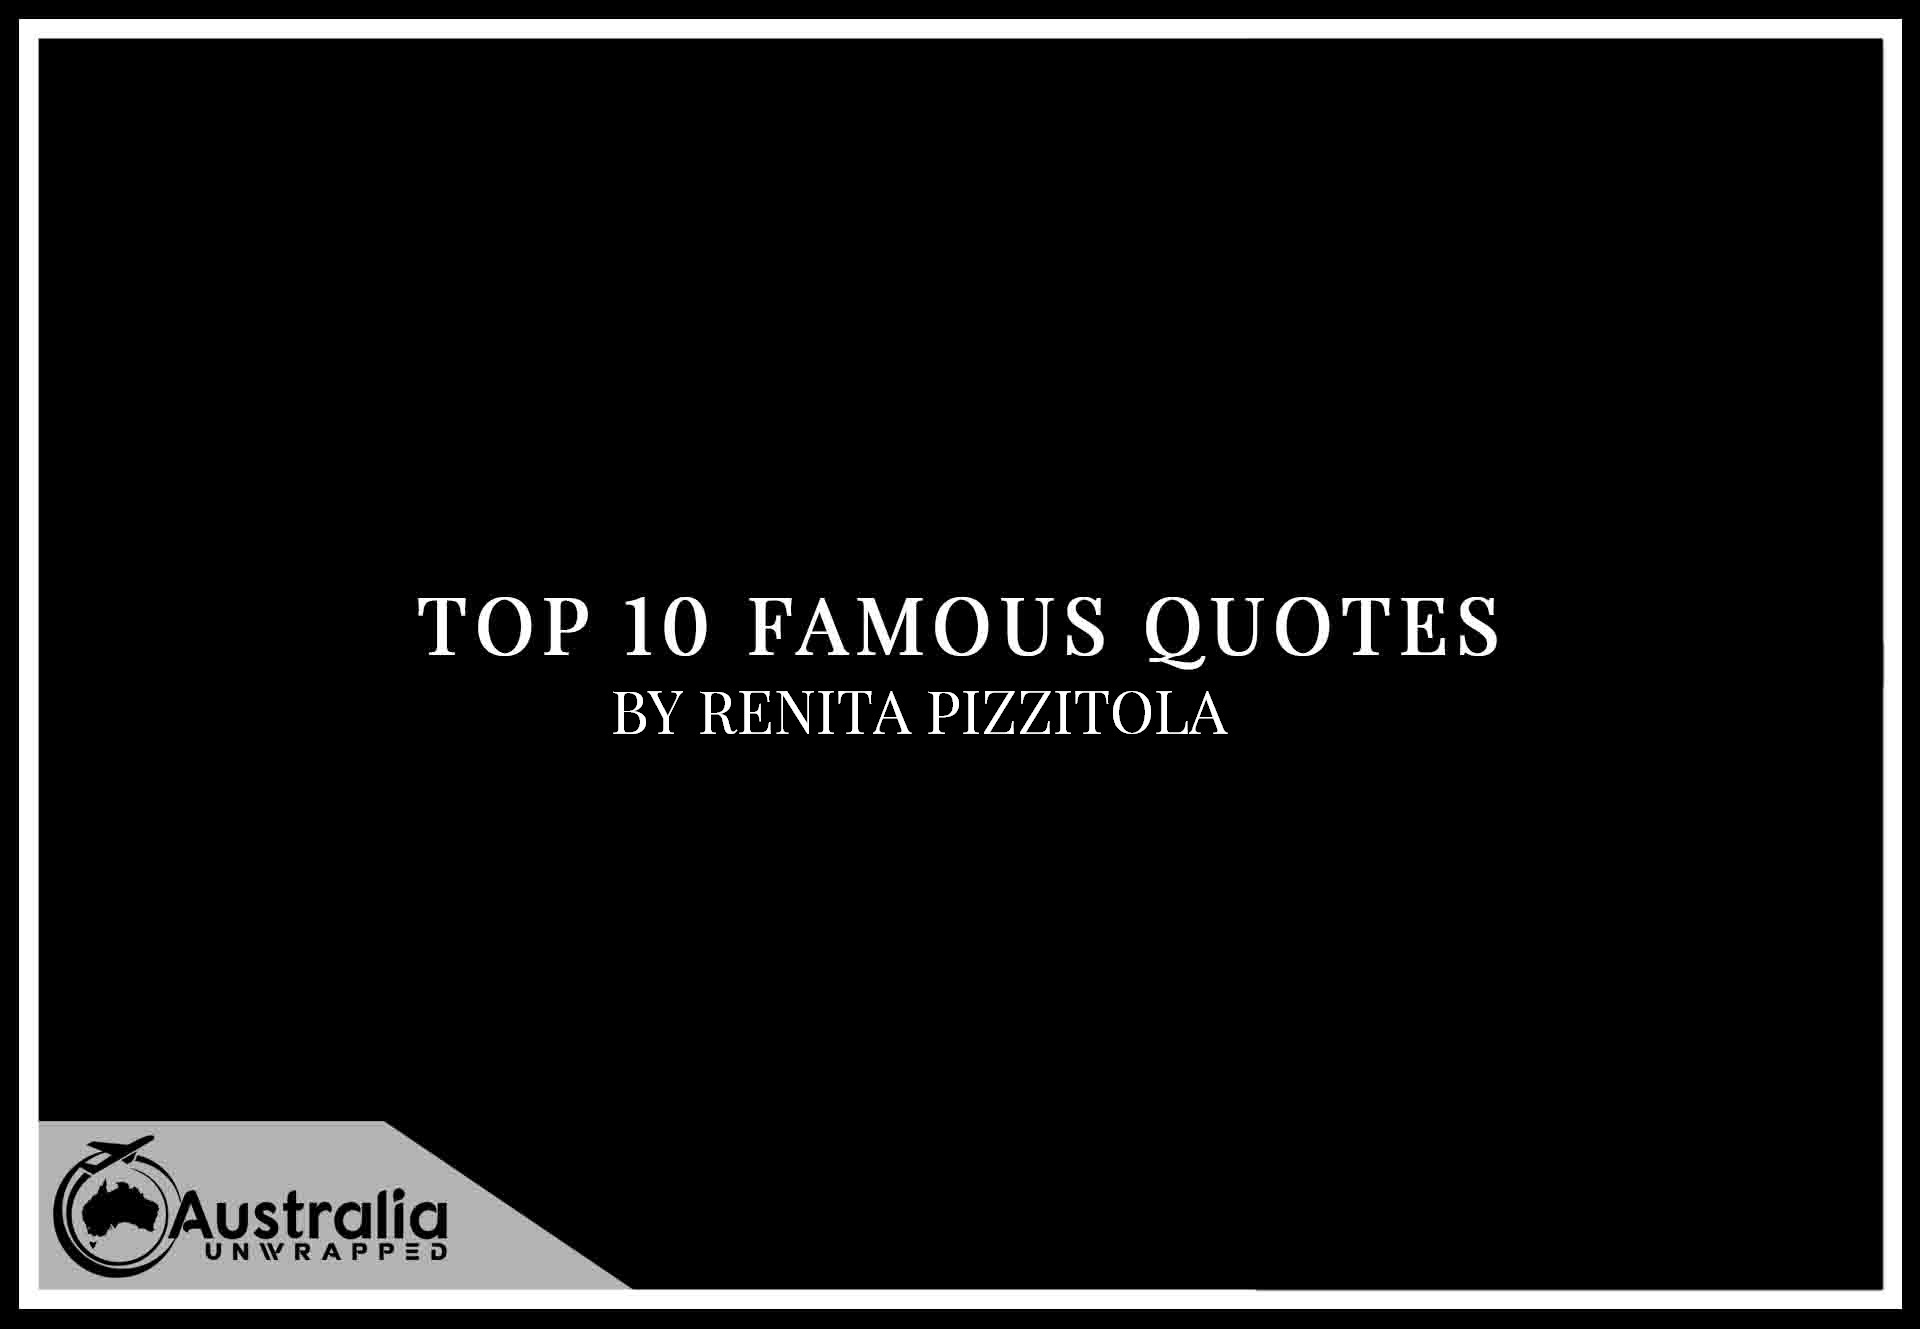 Top 10 Famous Quotes by Author Renita Pizzitola